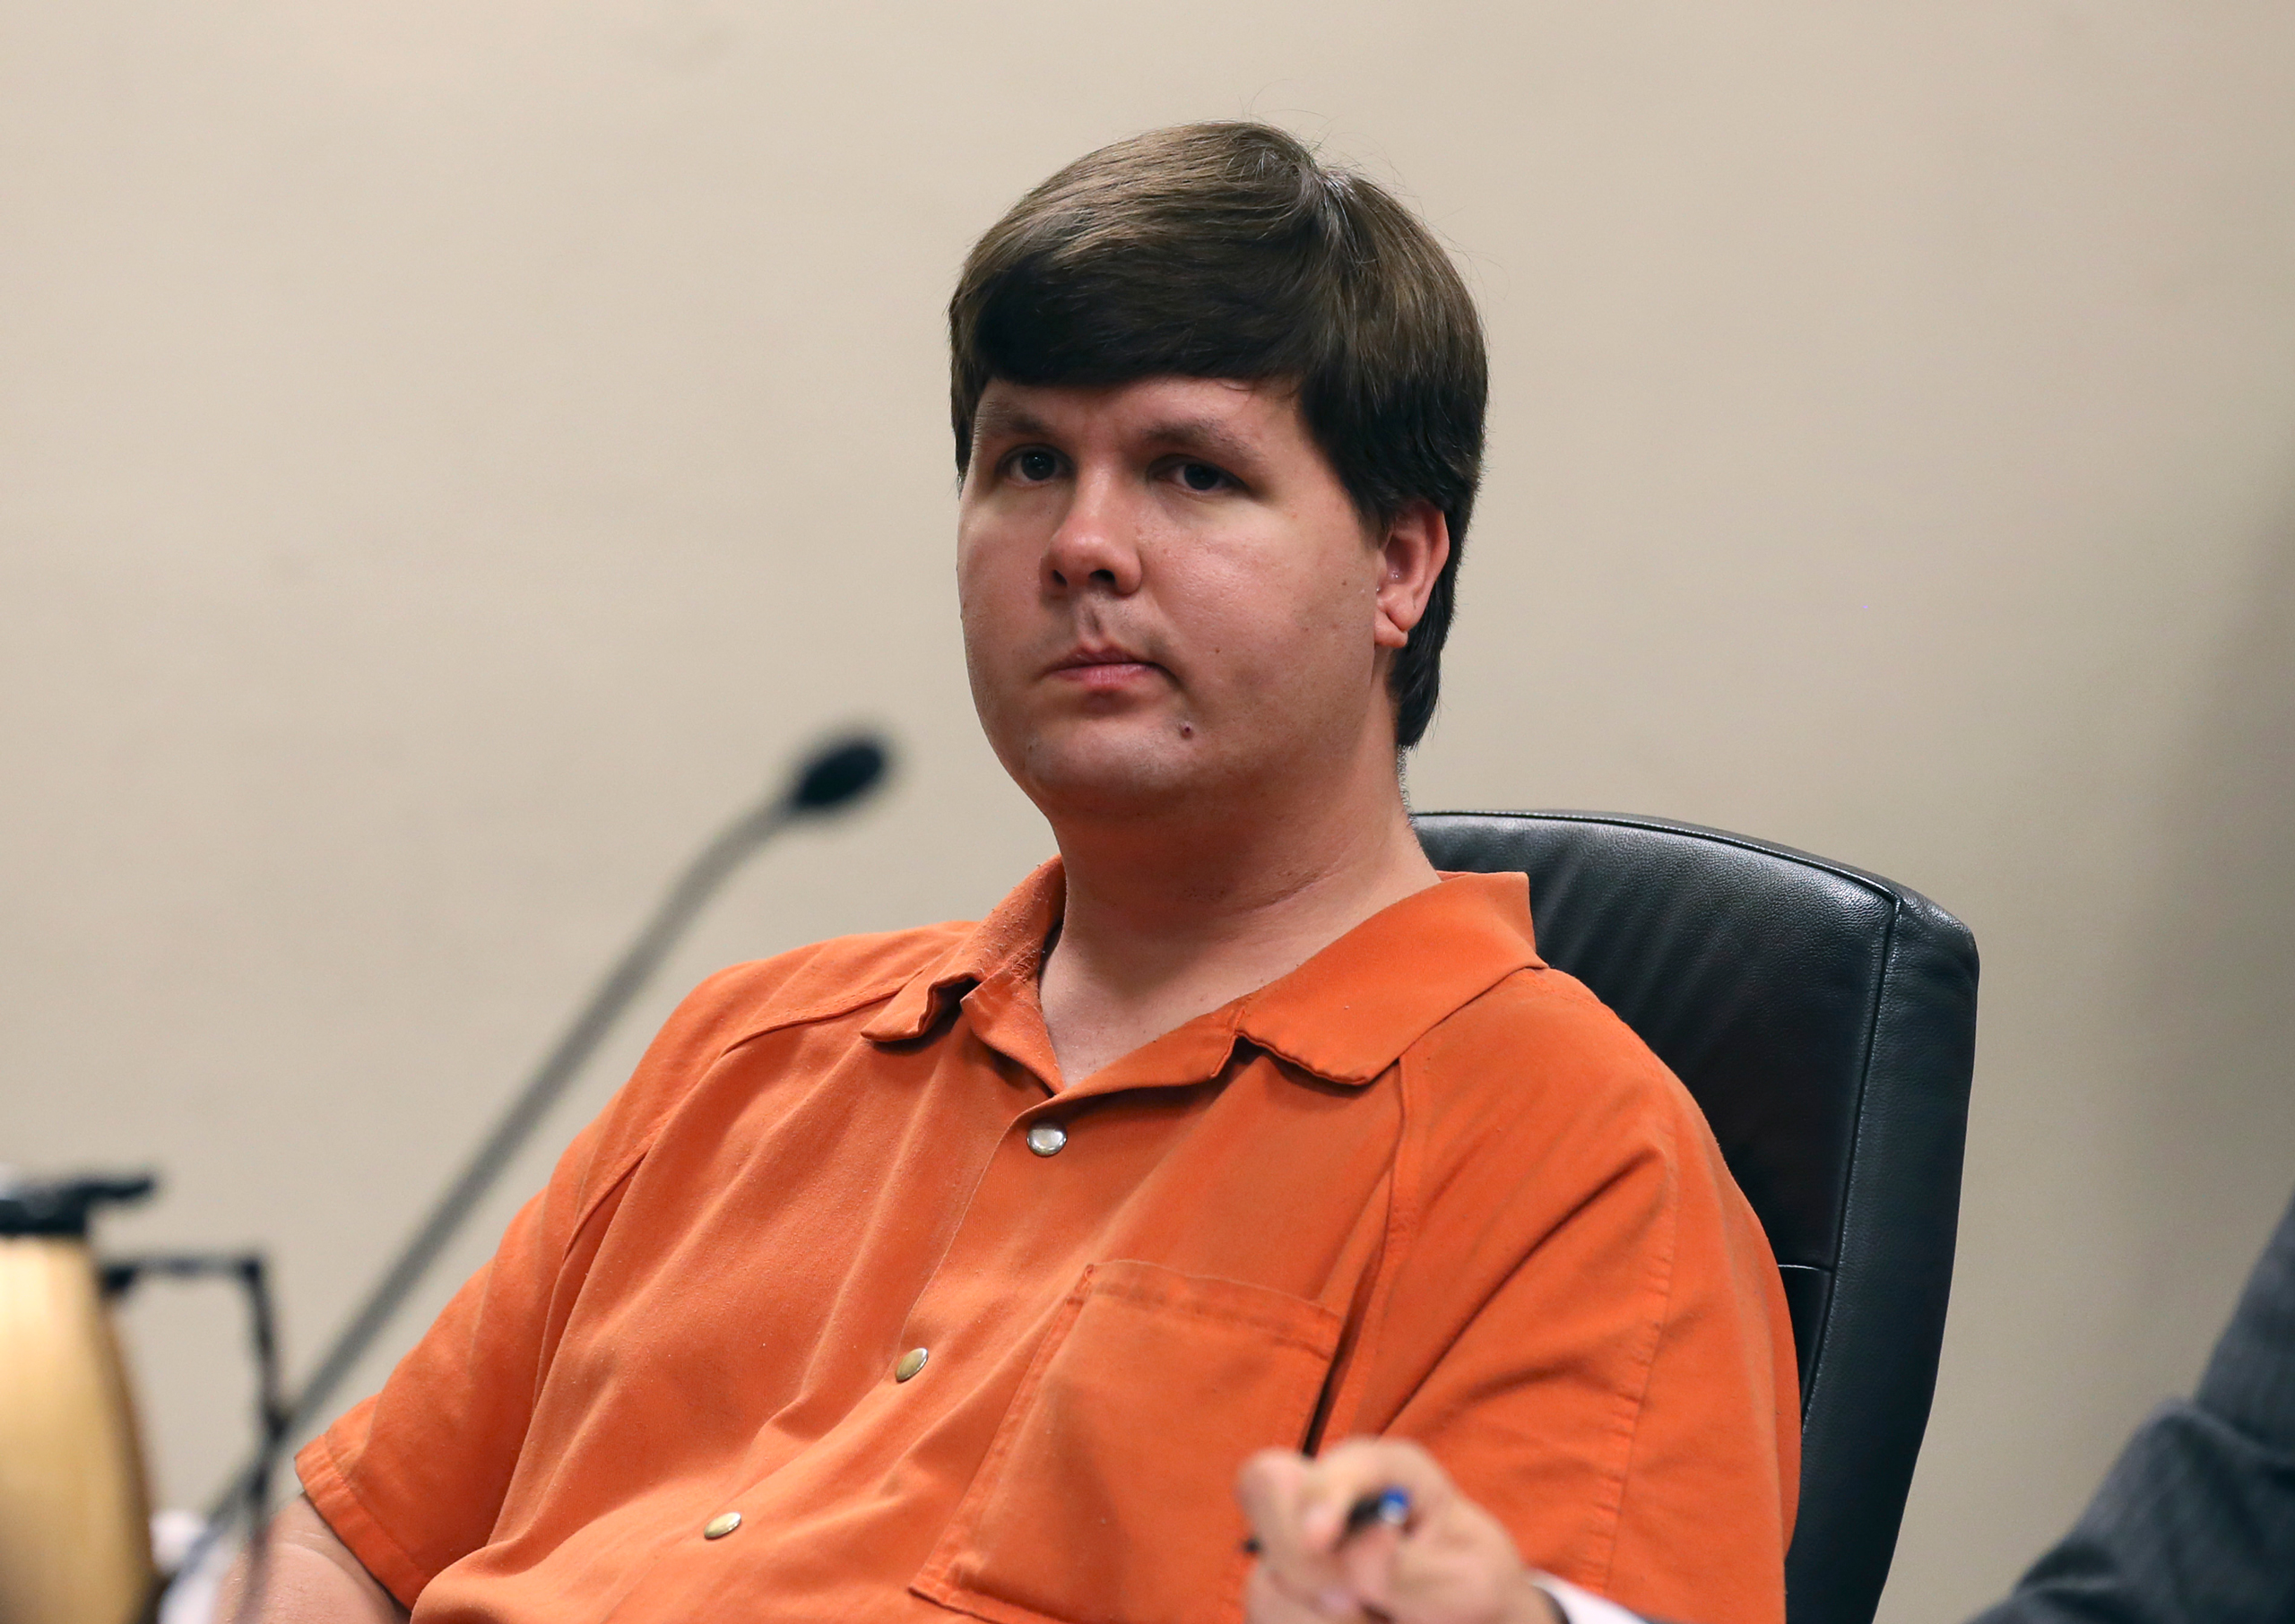 Justin Ross Harris sits in Cobb County Magistrate Court in Marietta, Georgia, on July 3, 2014.